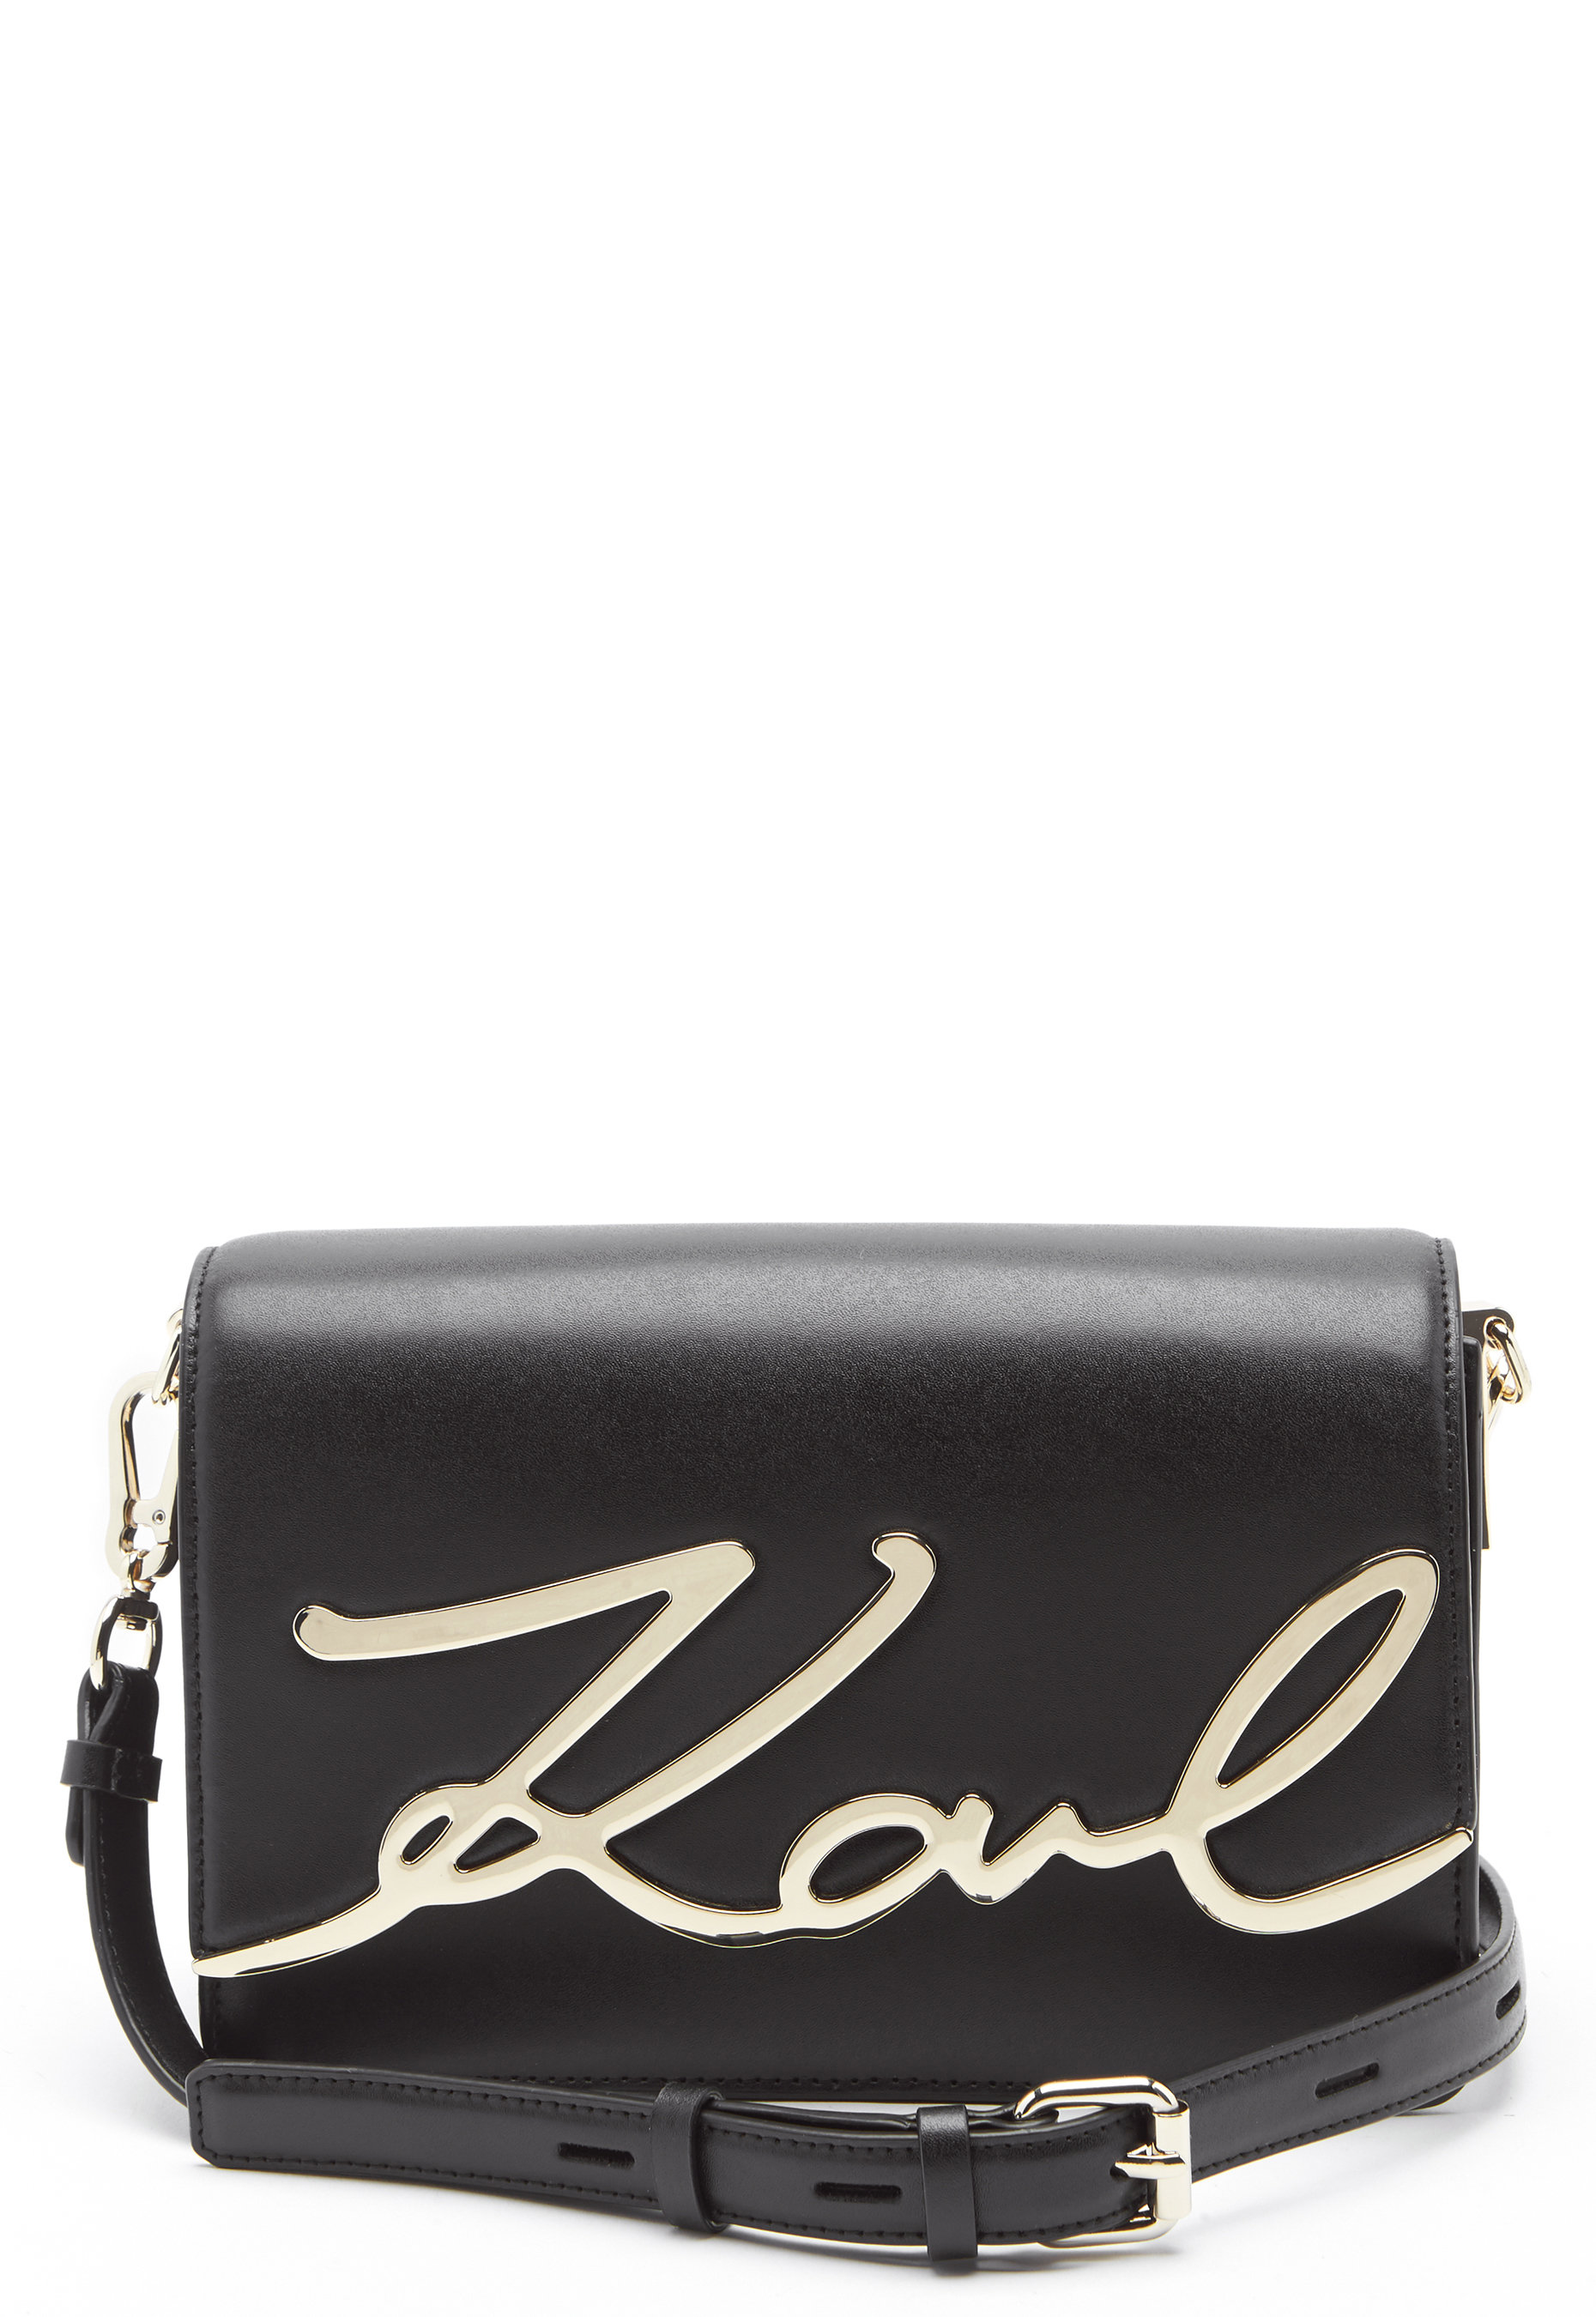 0bef3f99edb4 Karl Lagerfeld Signature Shoulder Bag Black Gold - Bubbleroom